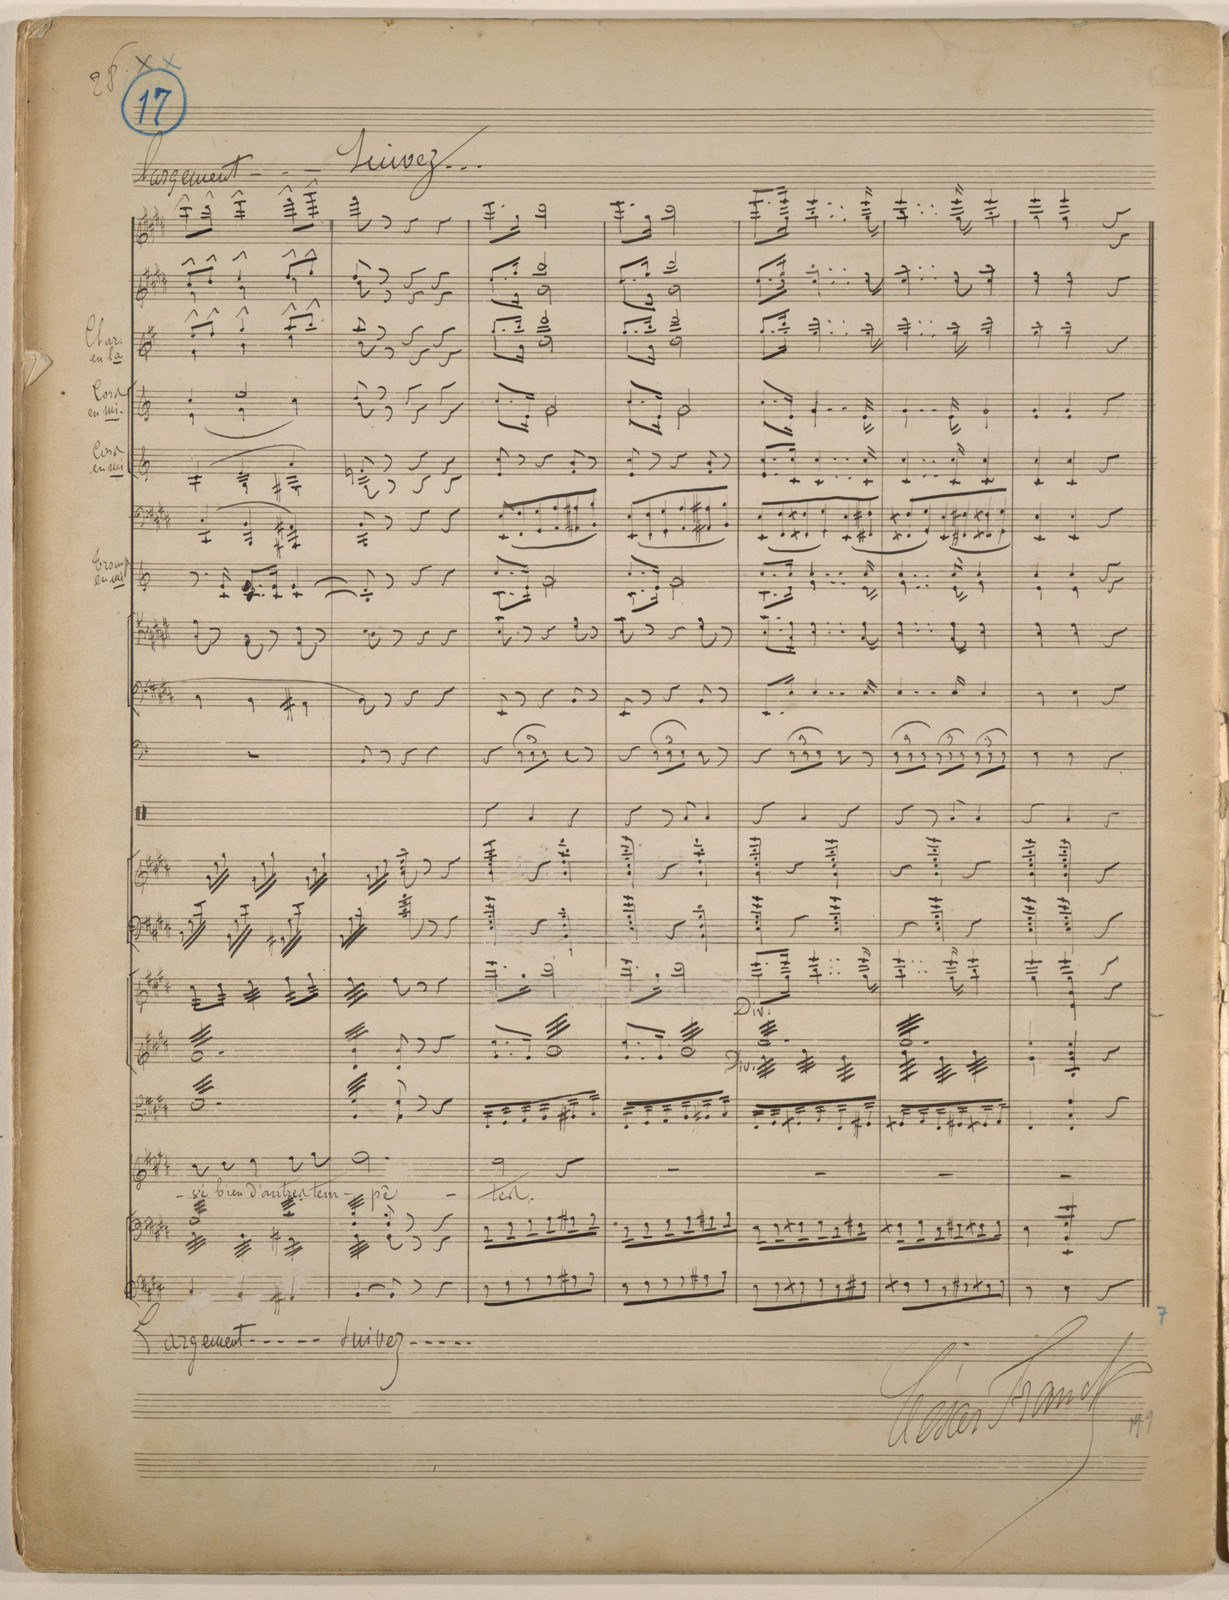 Paris, patriotic ode, for tenor and orchestra